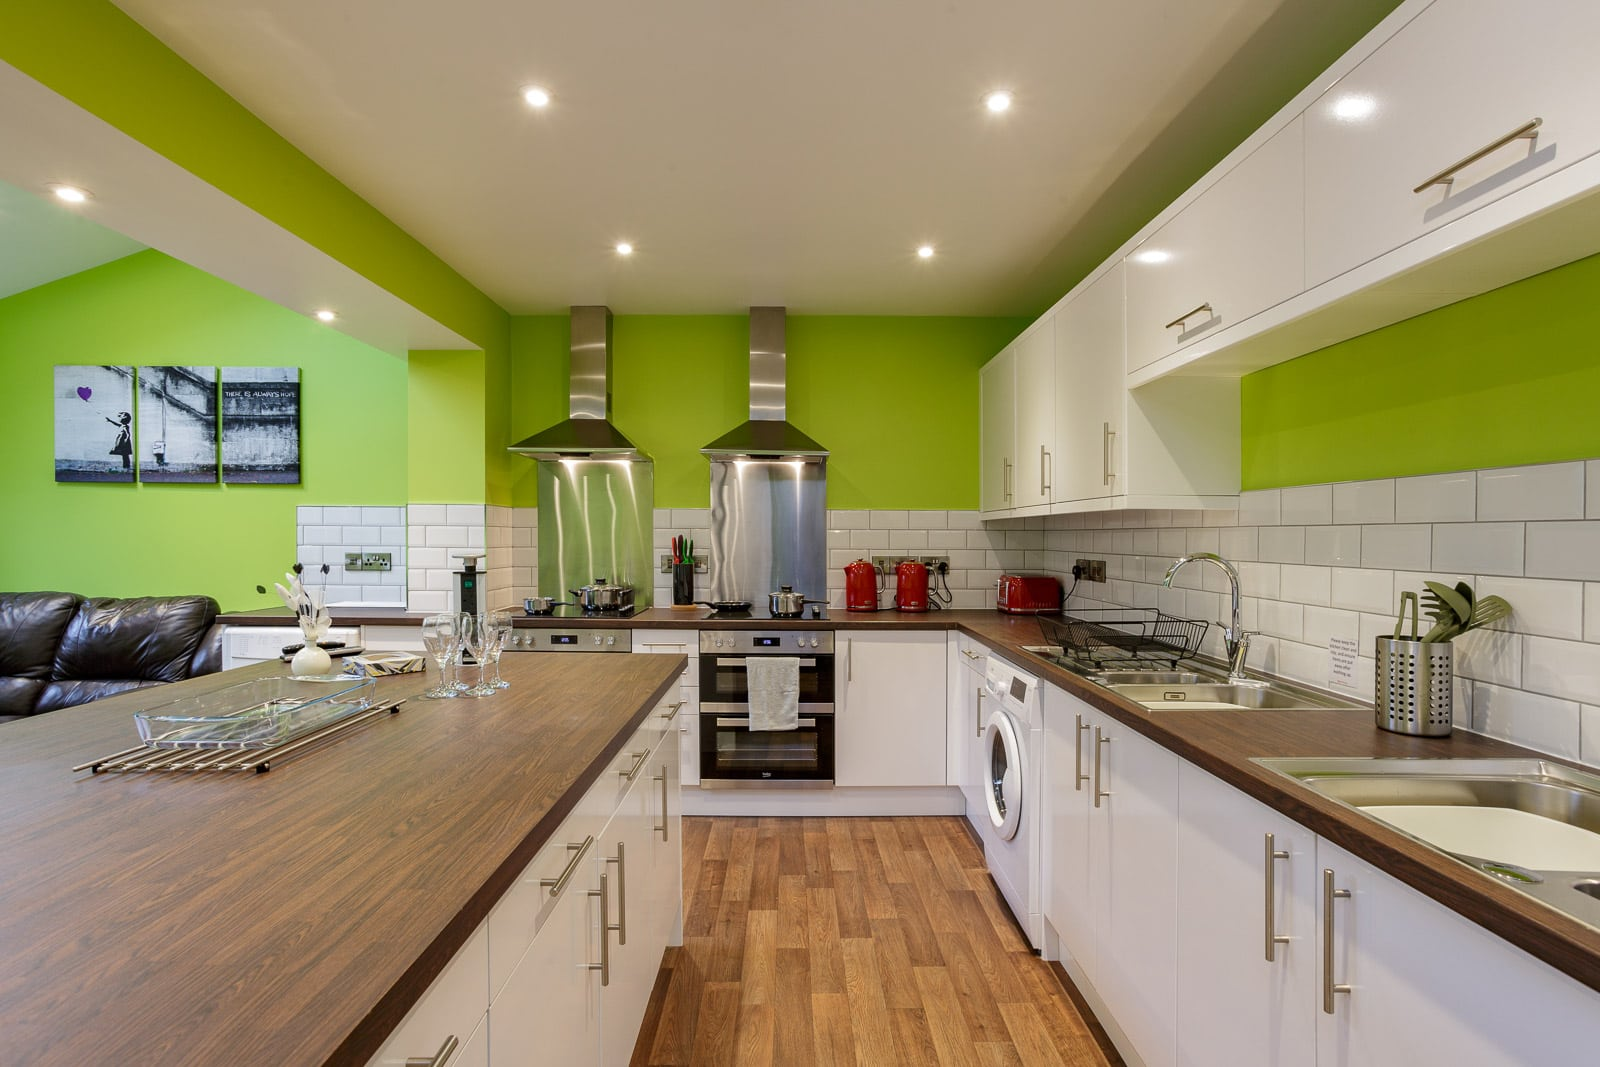 bright green and white modern kitchen in an upmarket HMO [house of multiple occupancy]